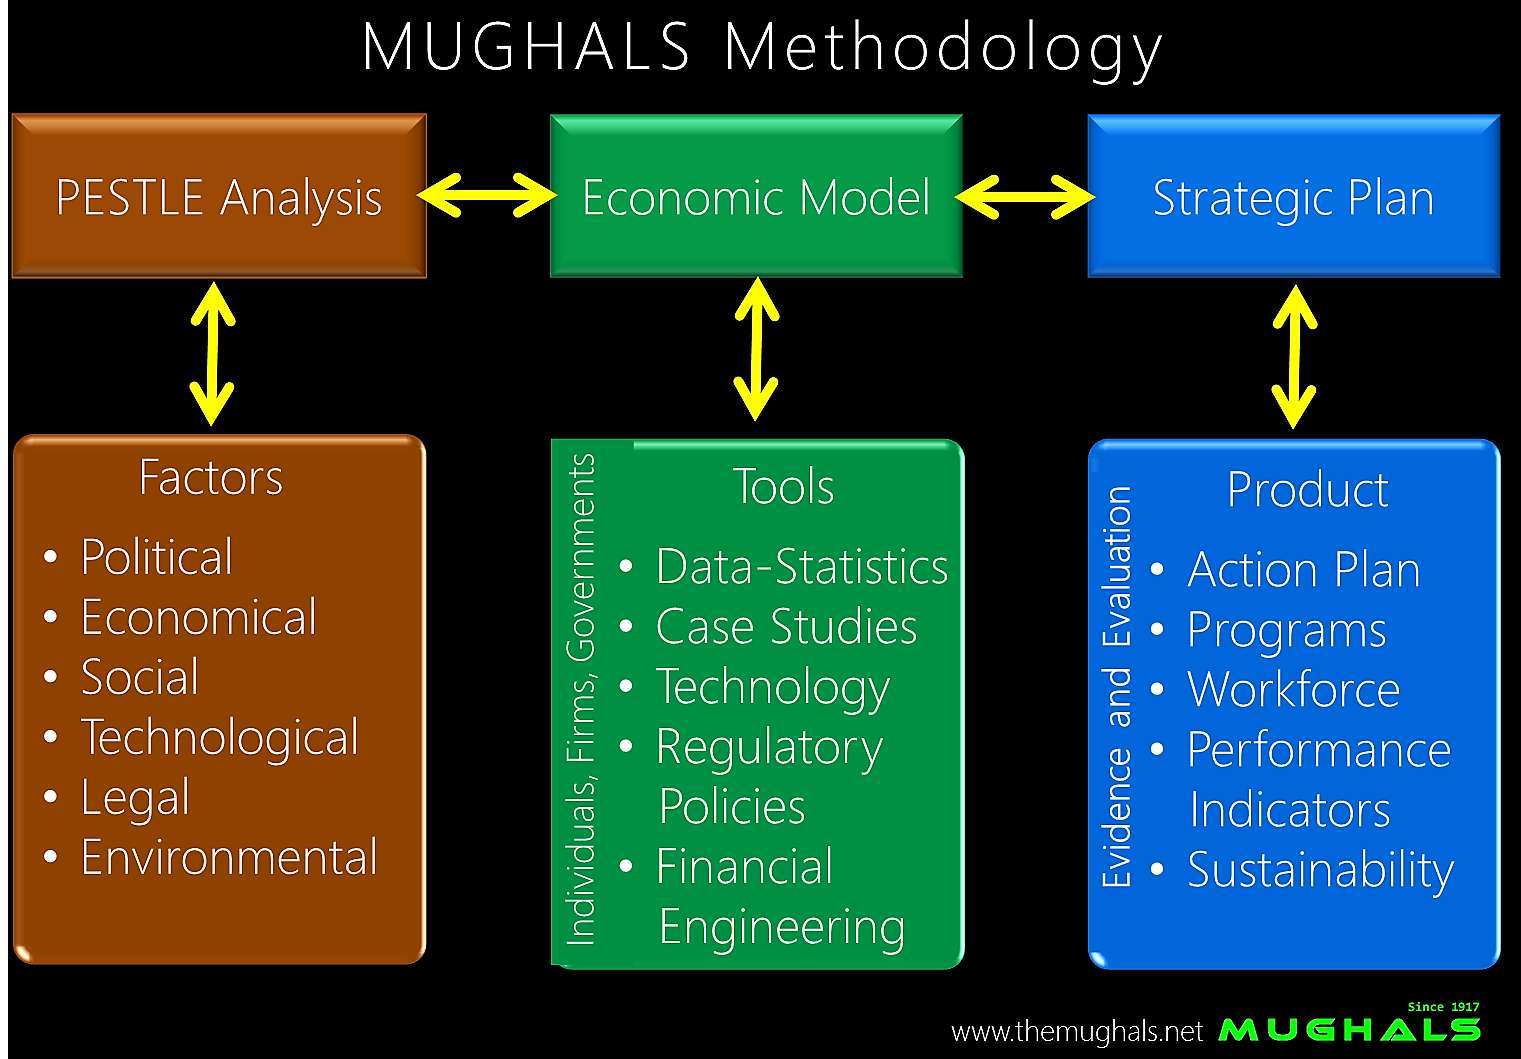 https://sites.google.com/a/themughals.net/www/home-mughals/methodology/MUGHALS_Web_Methodology.png?attredirects=0